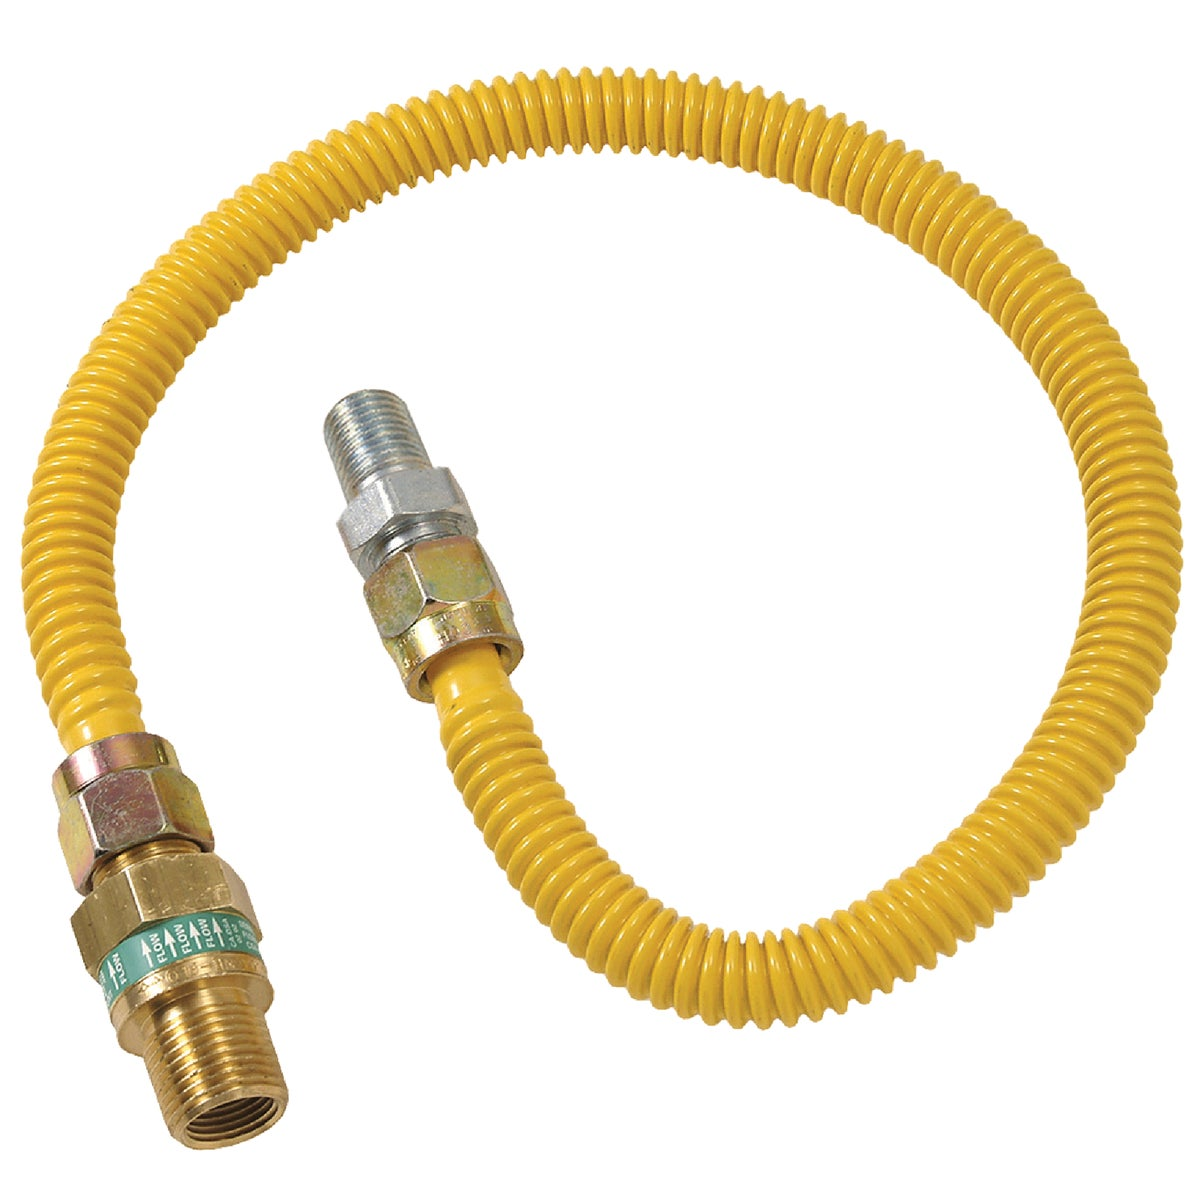 1/2X1/2-24 GAS CONNECTOR - CSSD44E-24P by Brass Craft